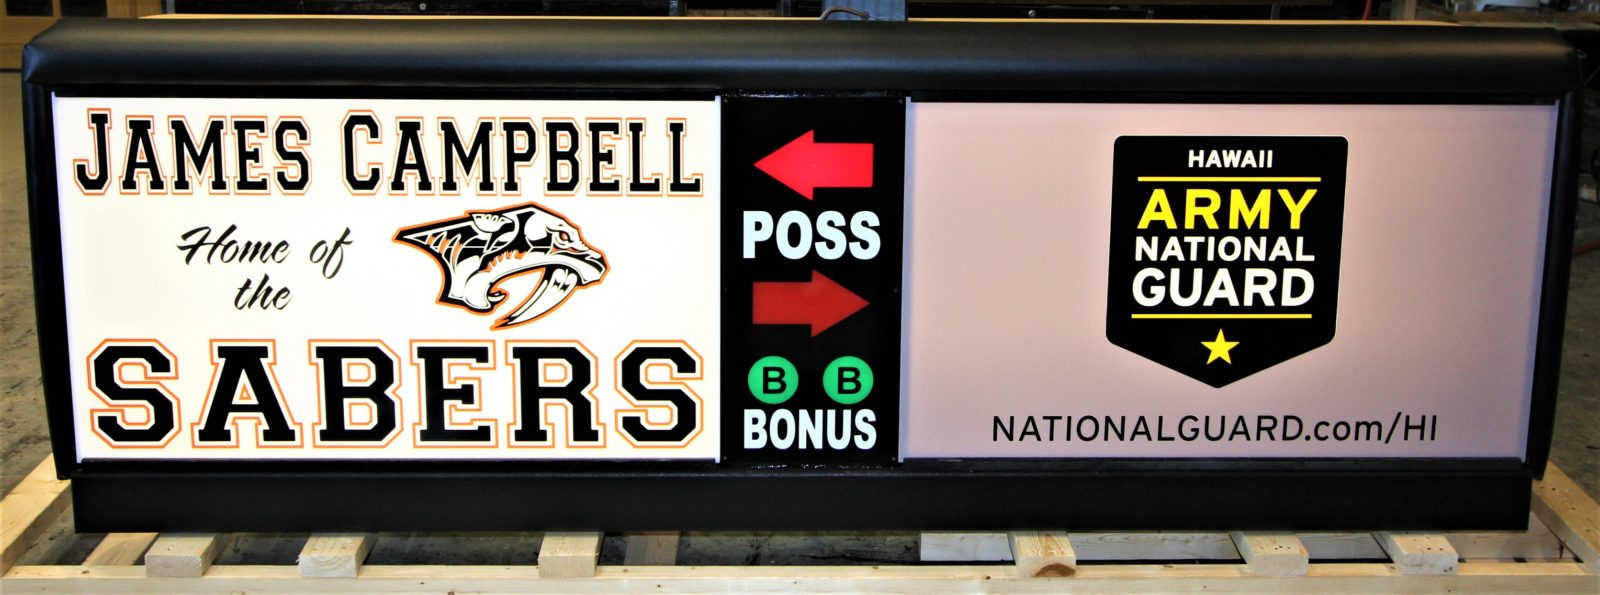 James Campbell High School Scoring Table HIARNG